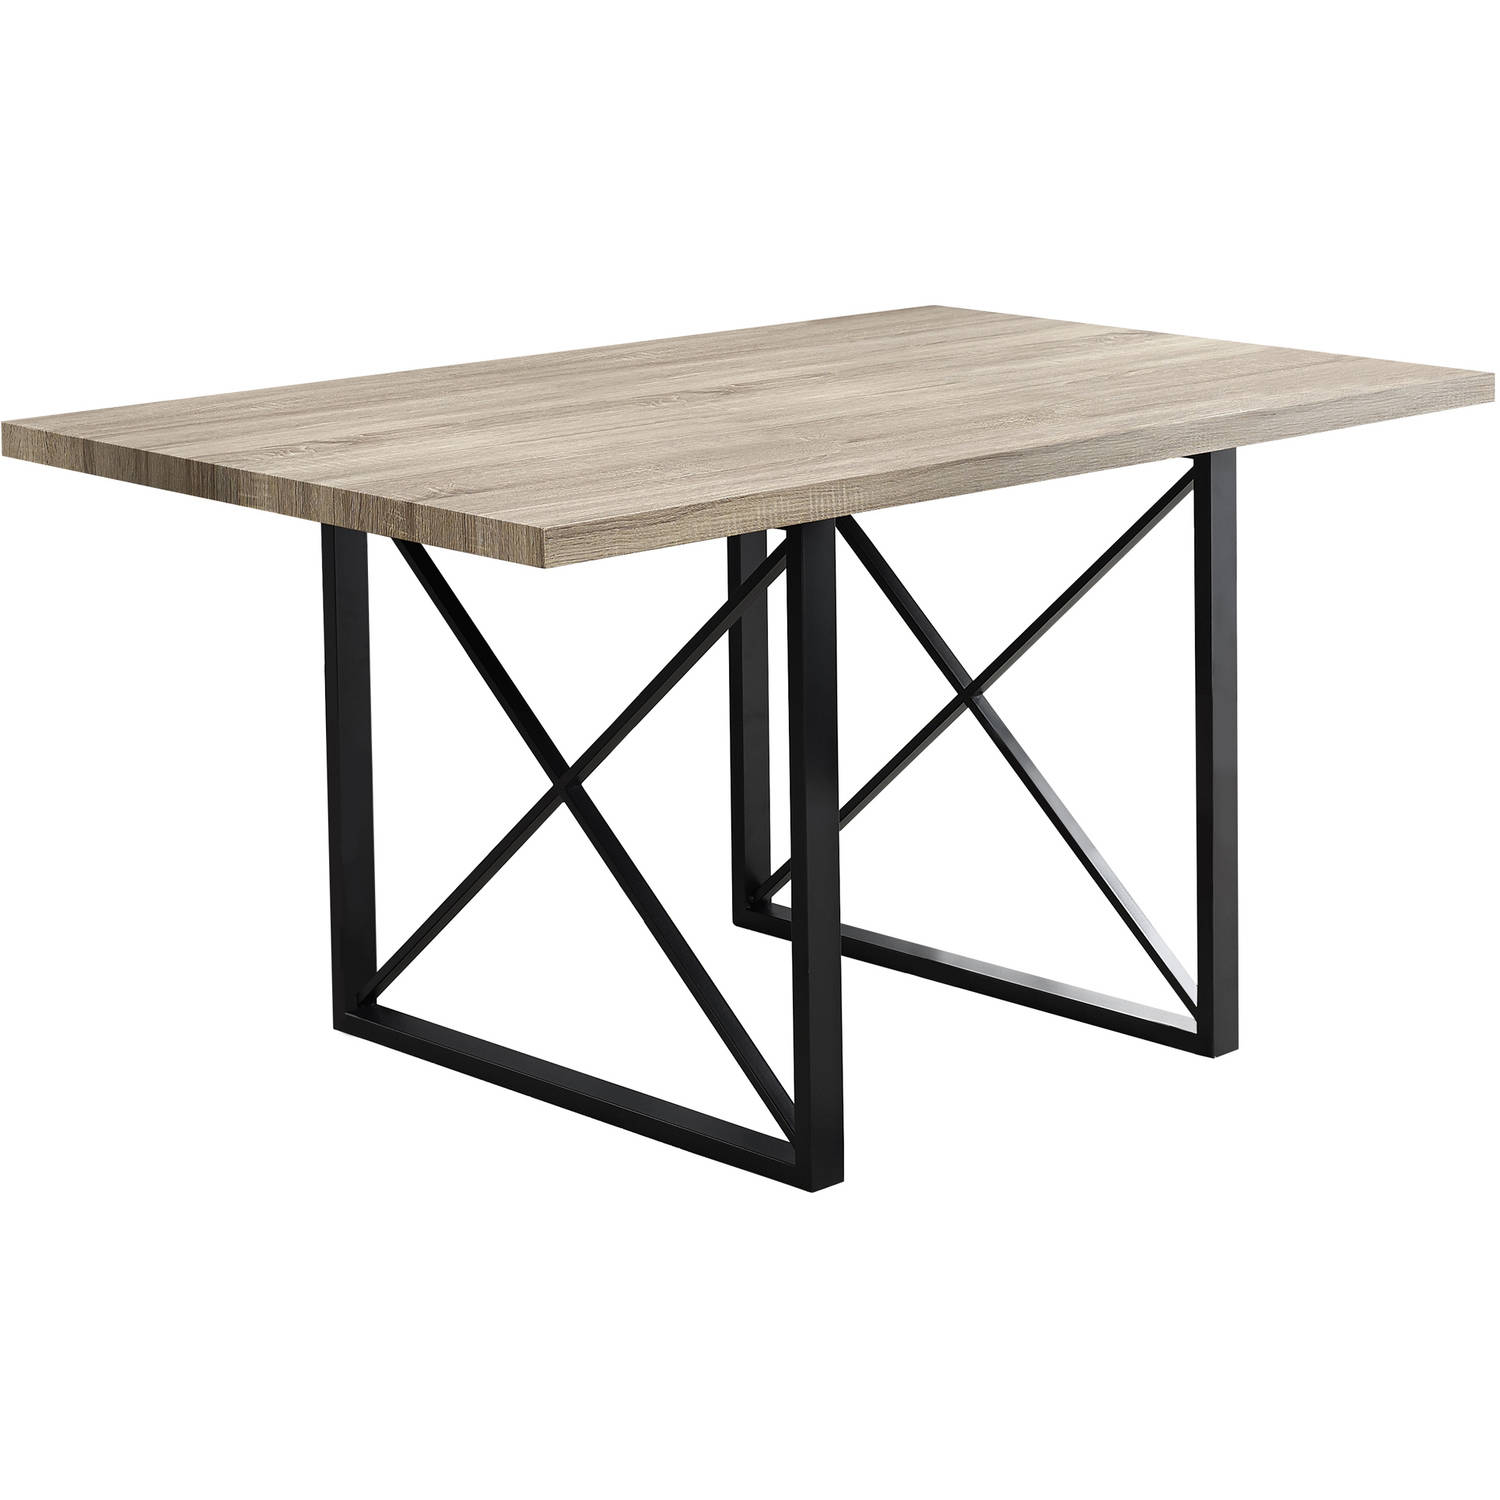 "Monarch Dining Table 36""X 60"" / Dark Taupe / Black Metal"